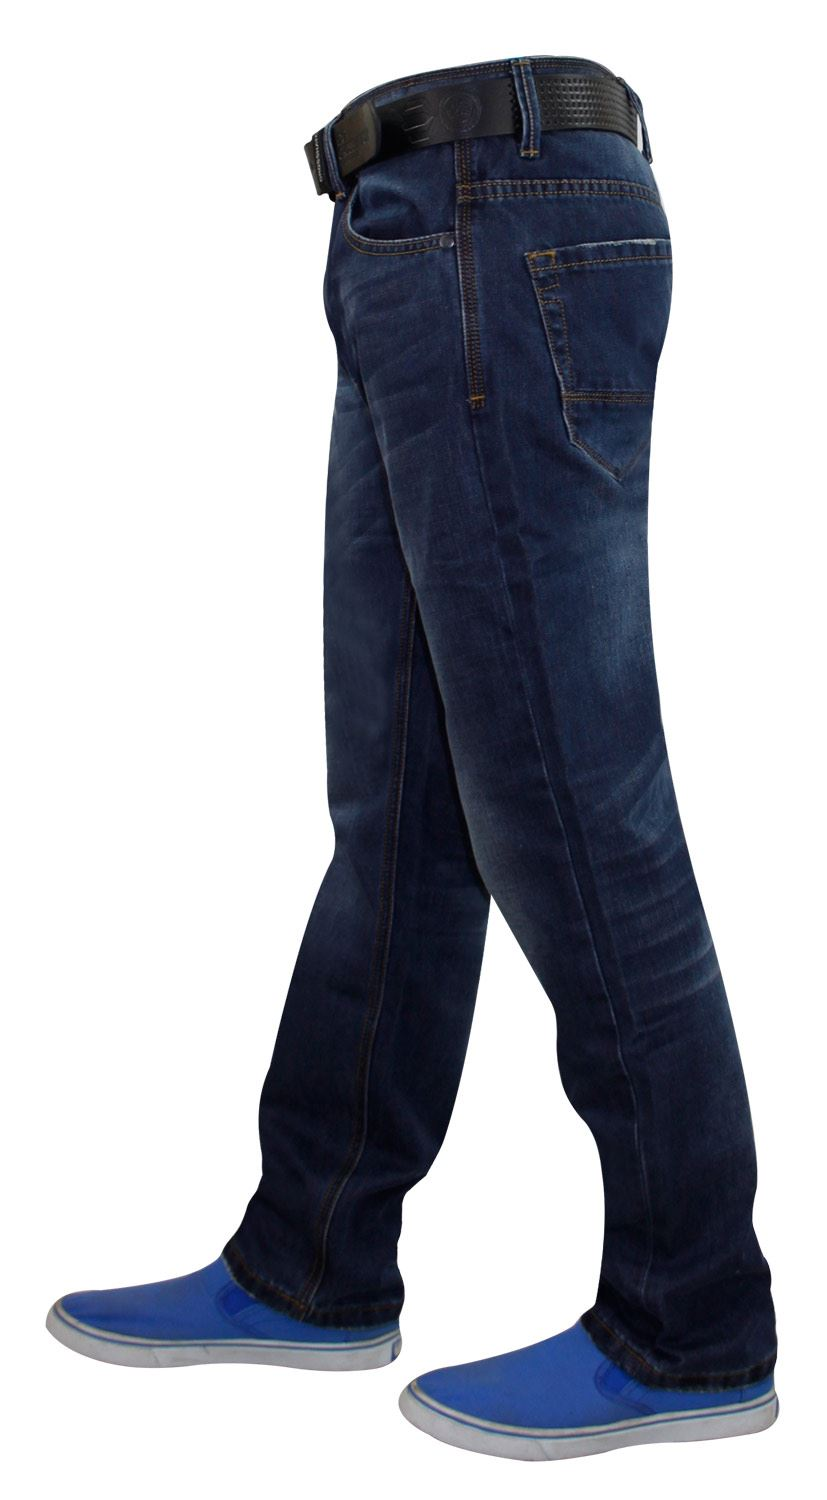 Mens-Straight-Leg-Jeans-Regular-Fit-Denim-Pants-Trousers-With-Free-Leather-Belt thumbnail 3